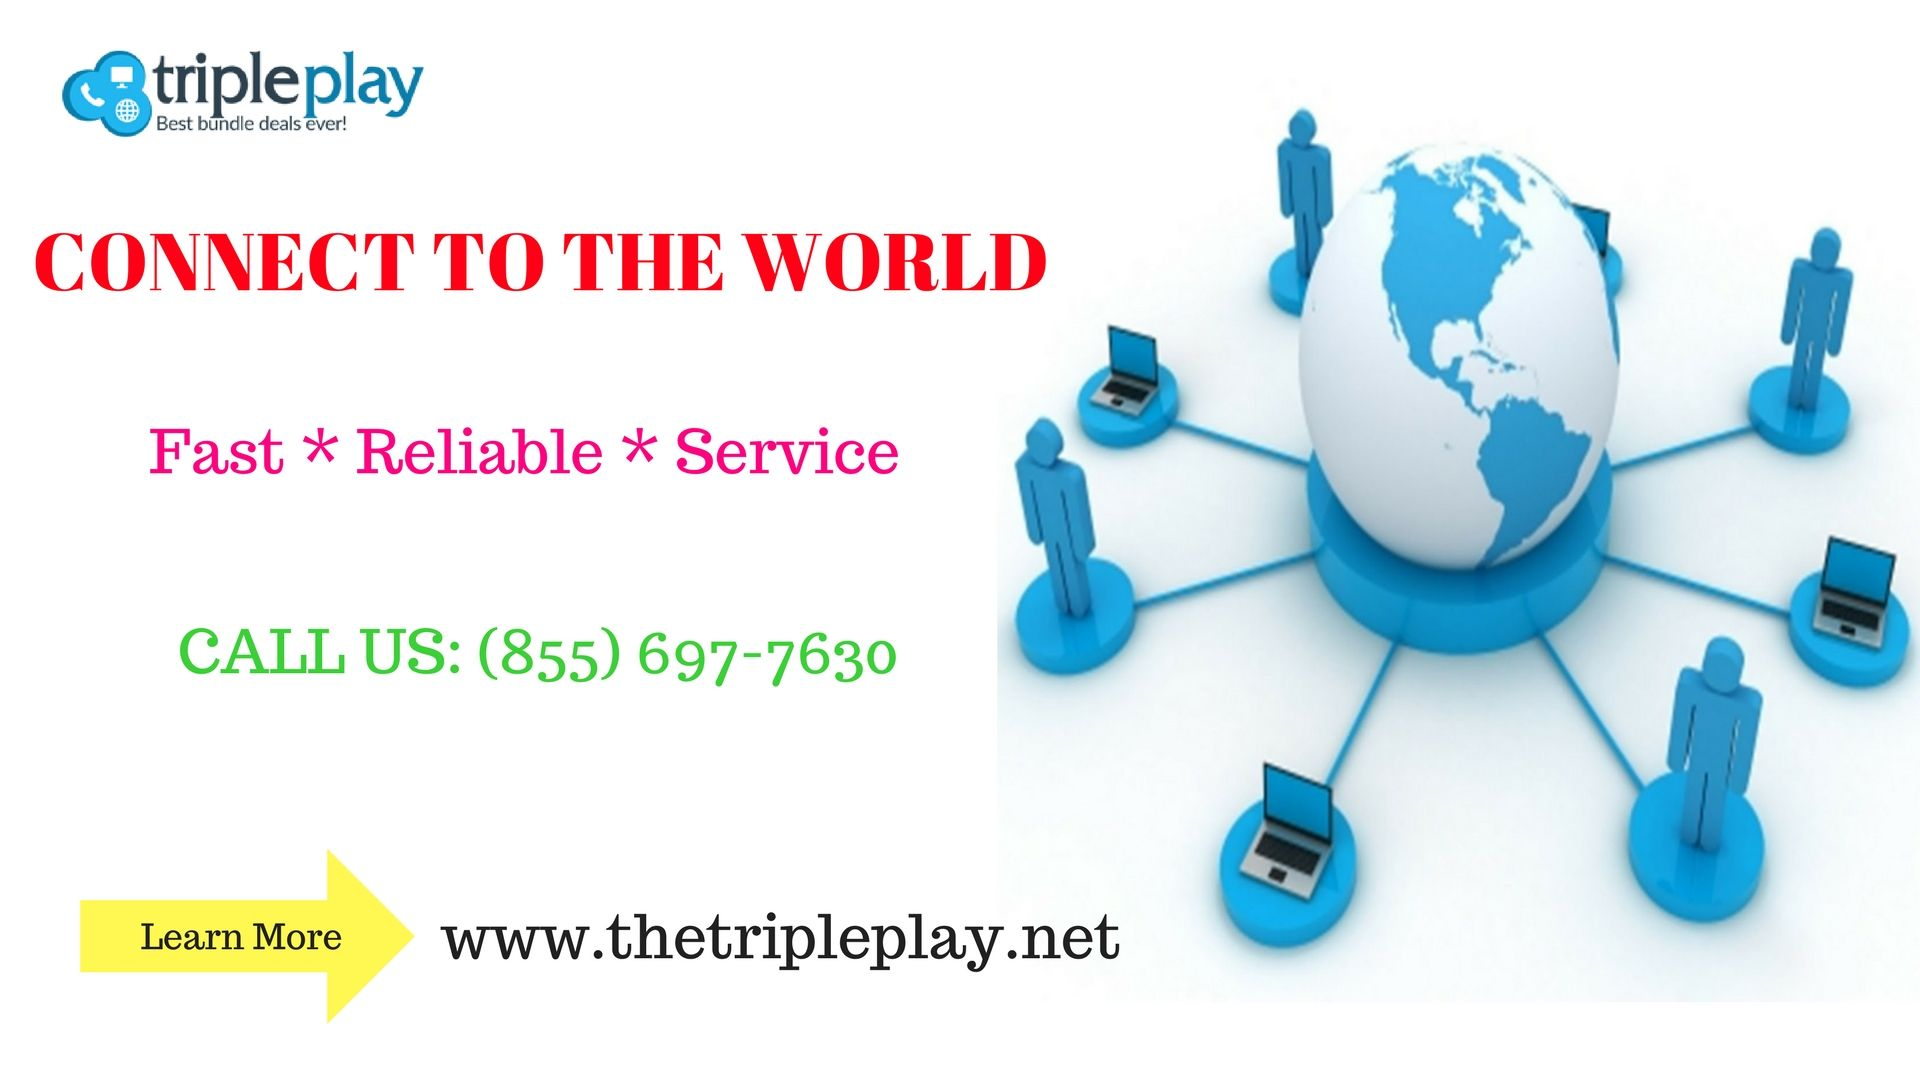 service from Triple play can be the best option